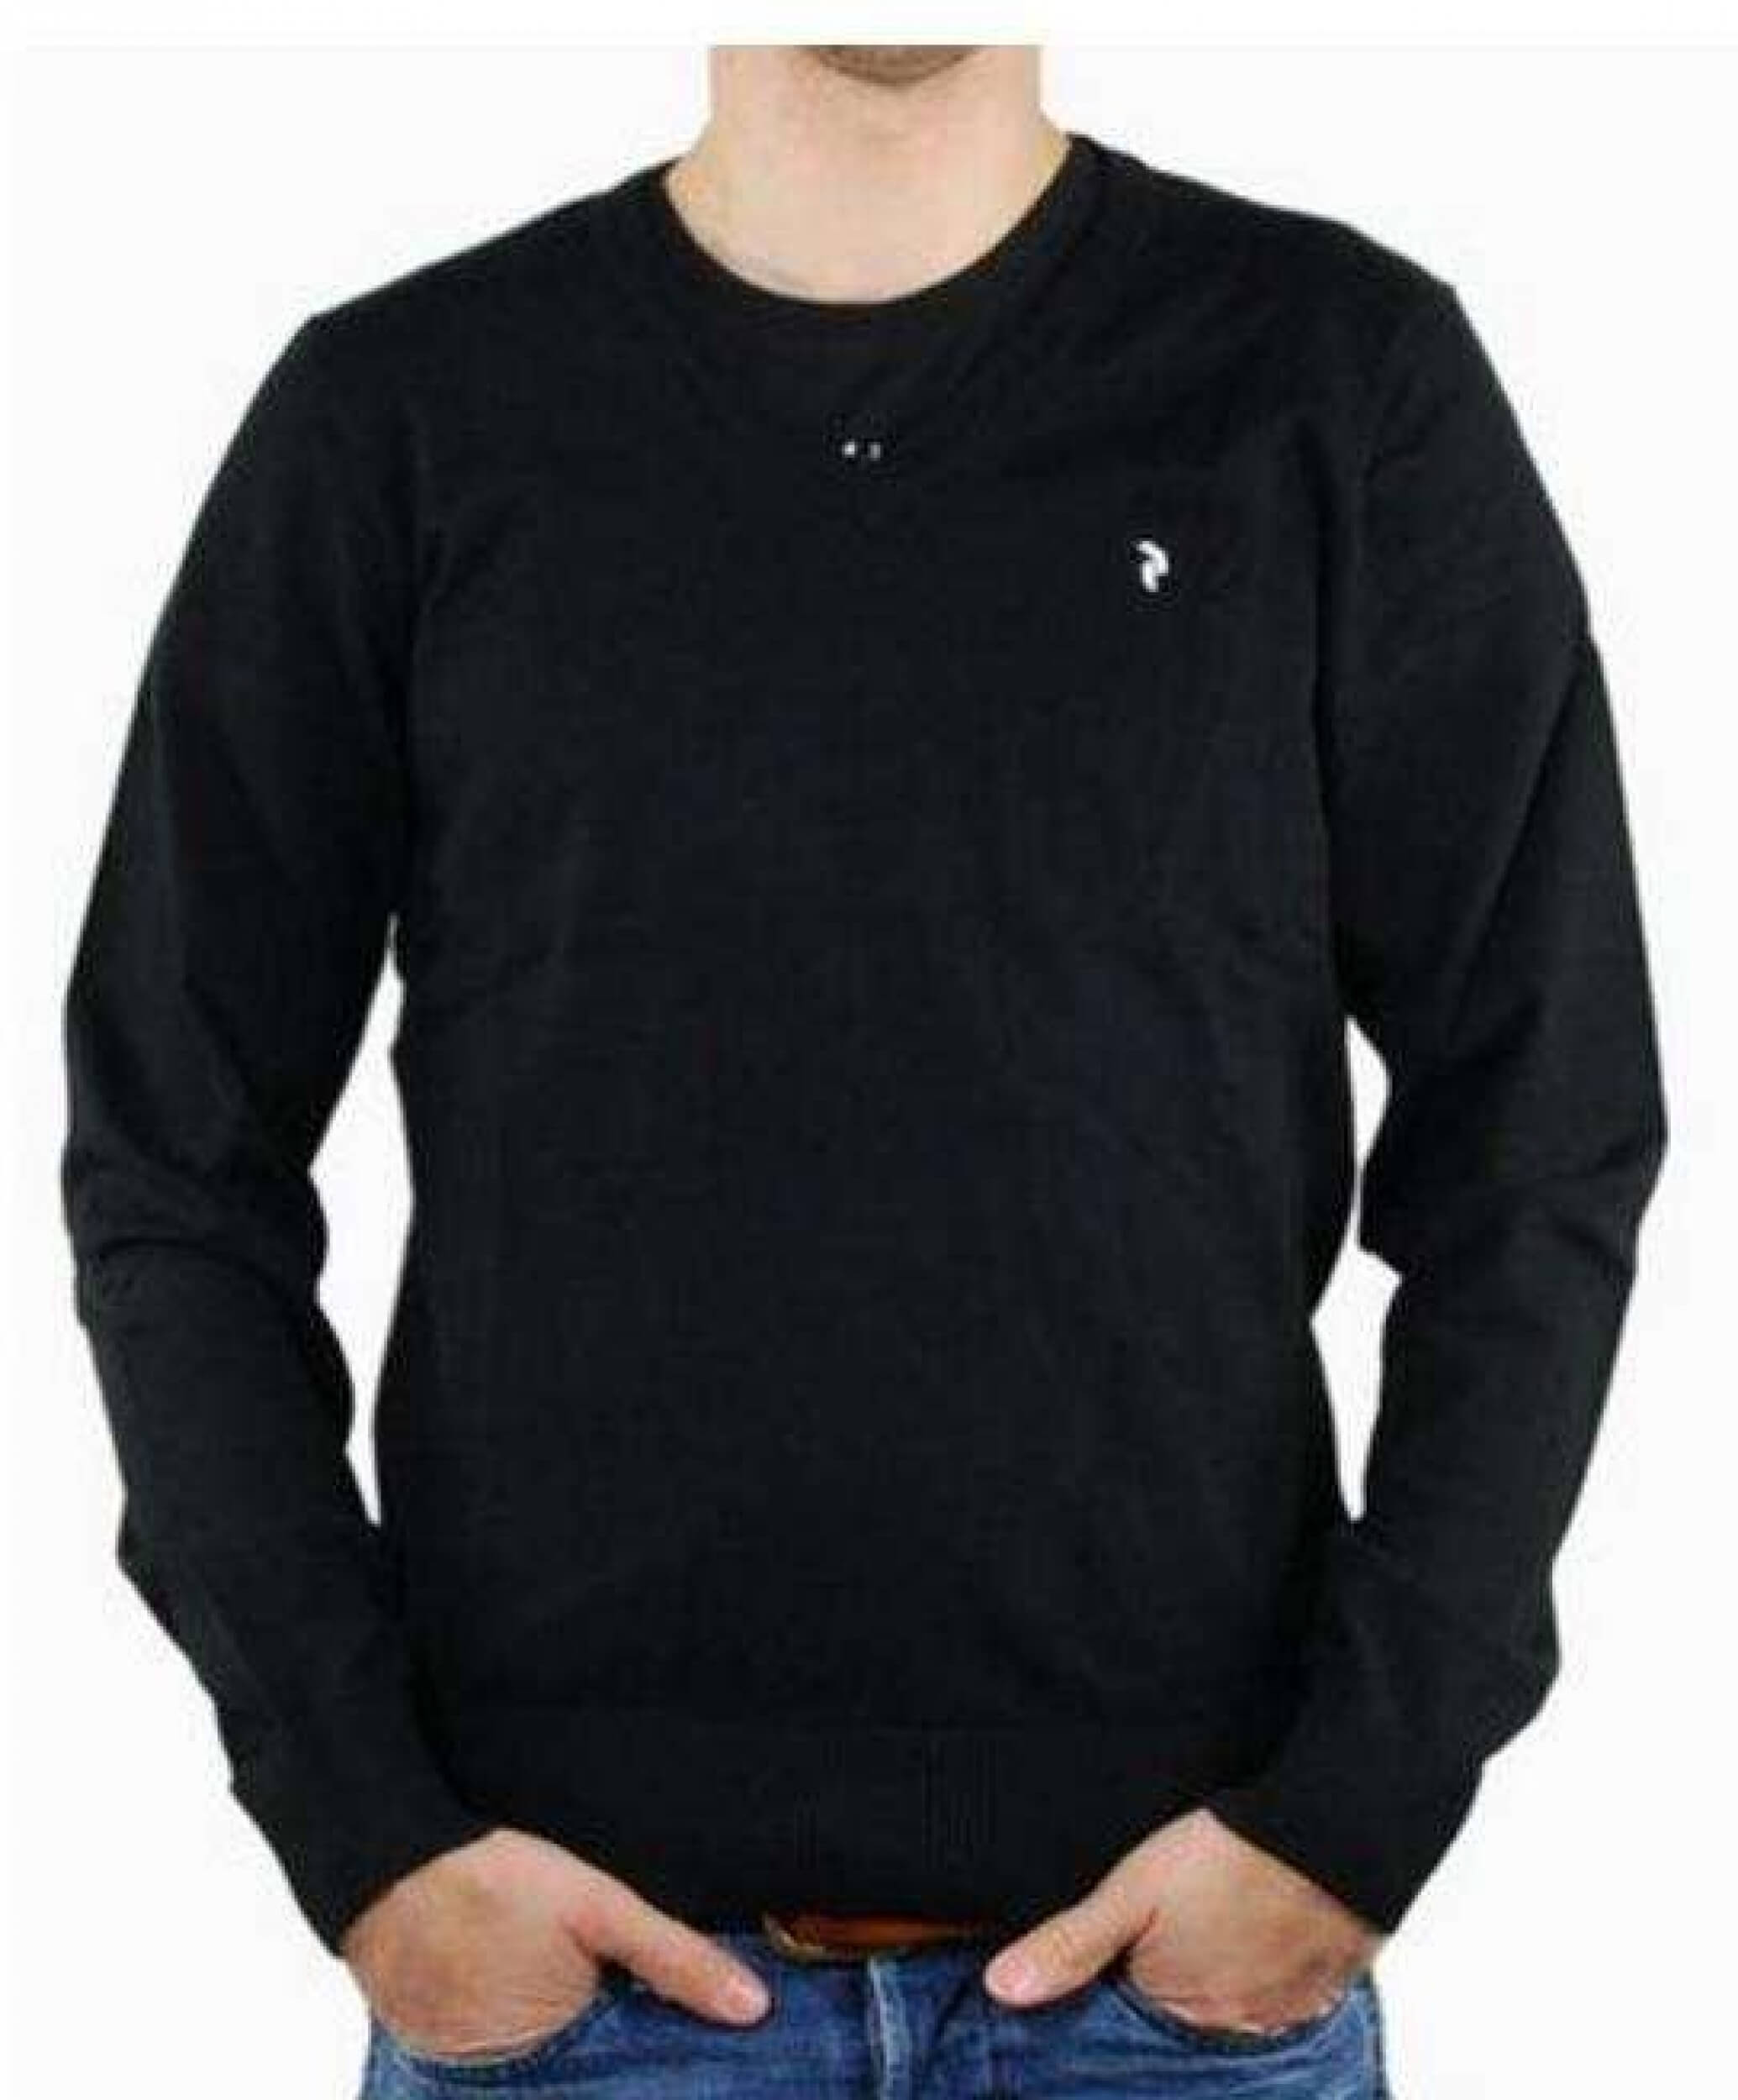 Peak Performance Herren Strick Pullover Golf VN schwarz